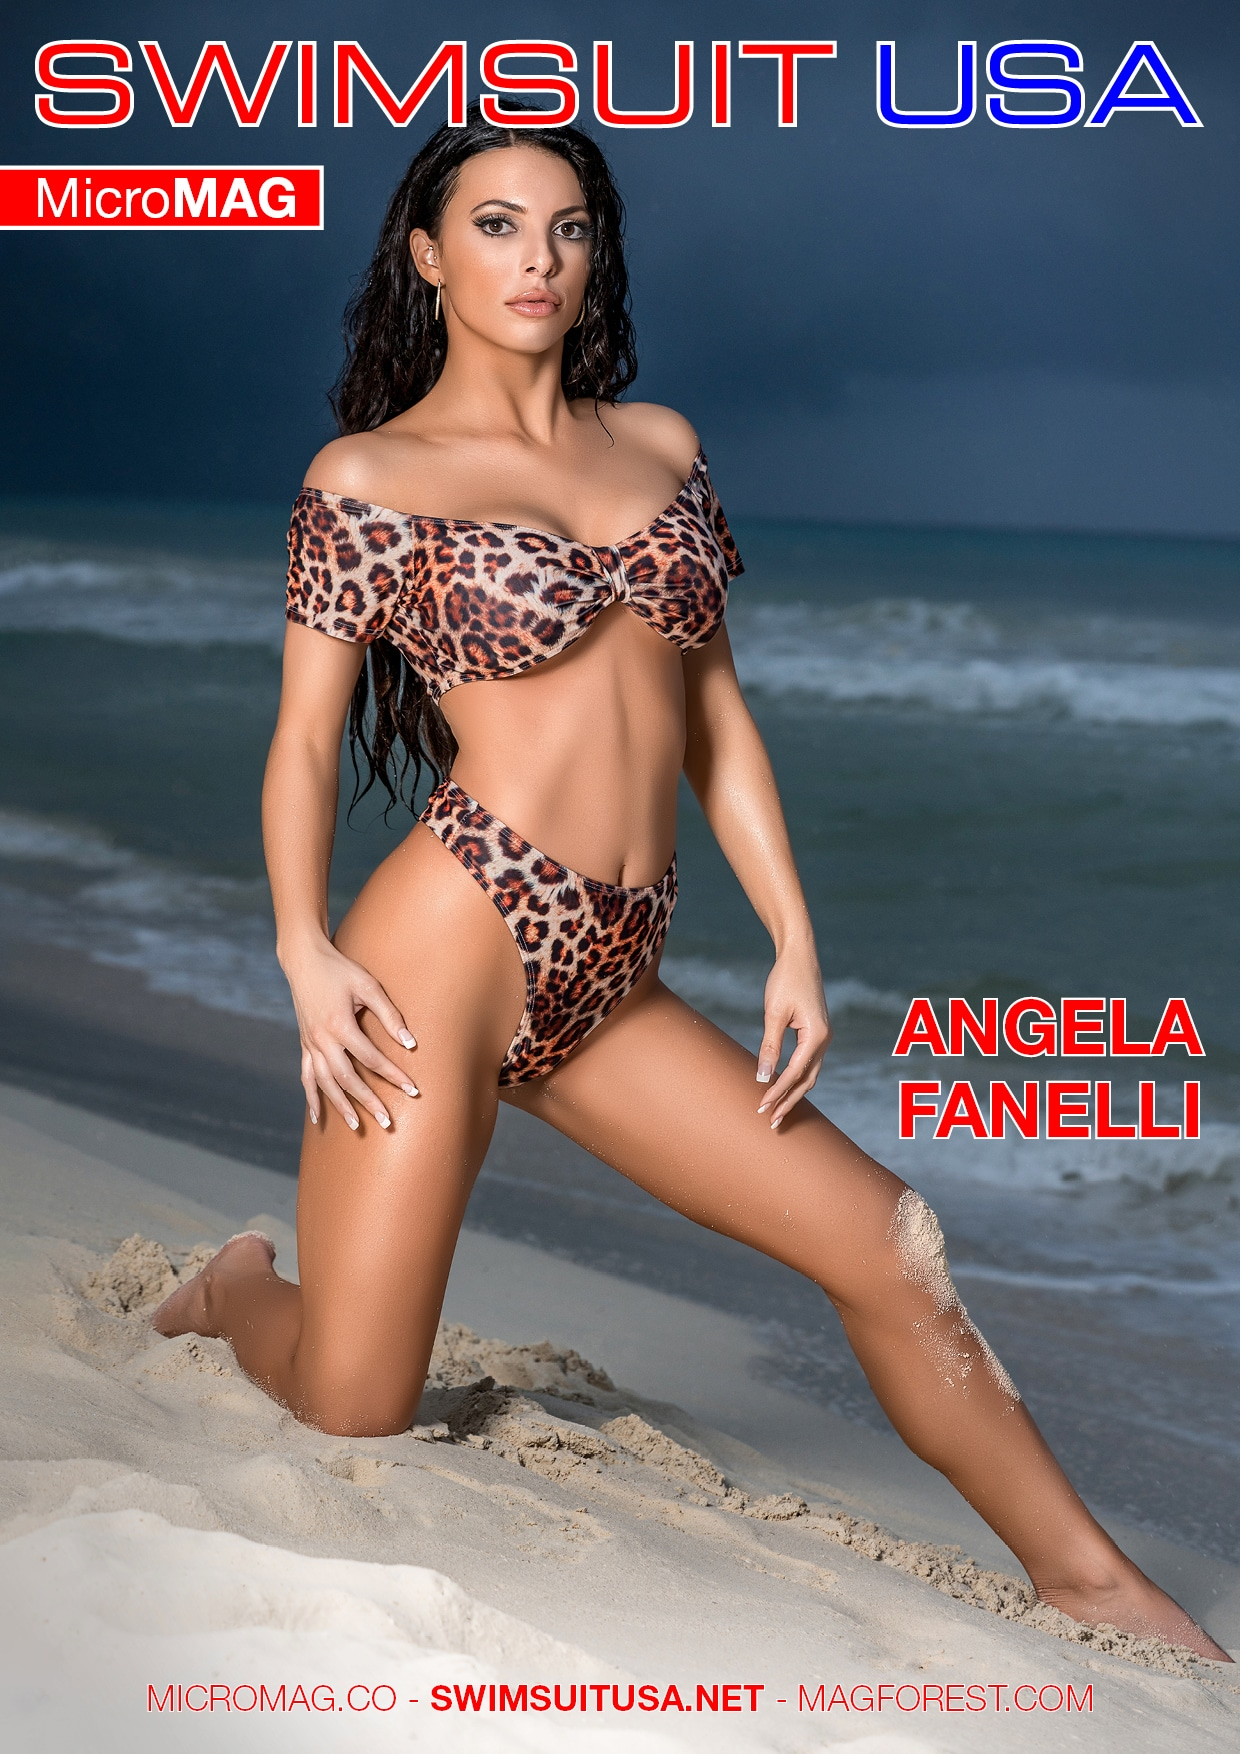 Swimsuit USA MicroMAG - Angela Fanelli - Issue 2 1